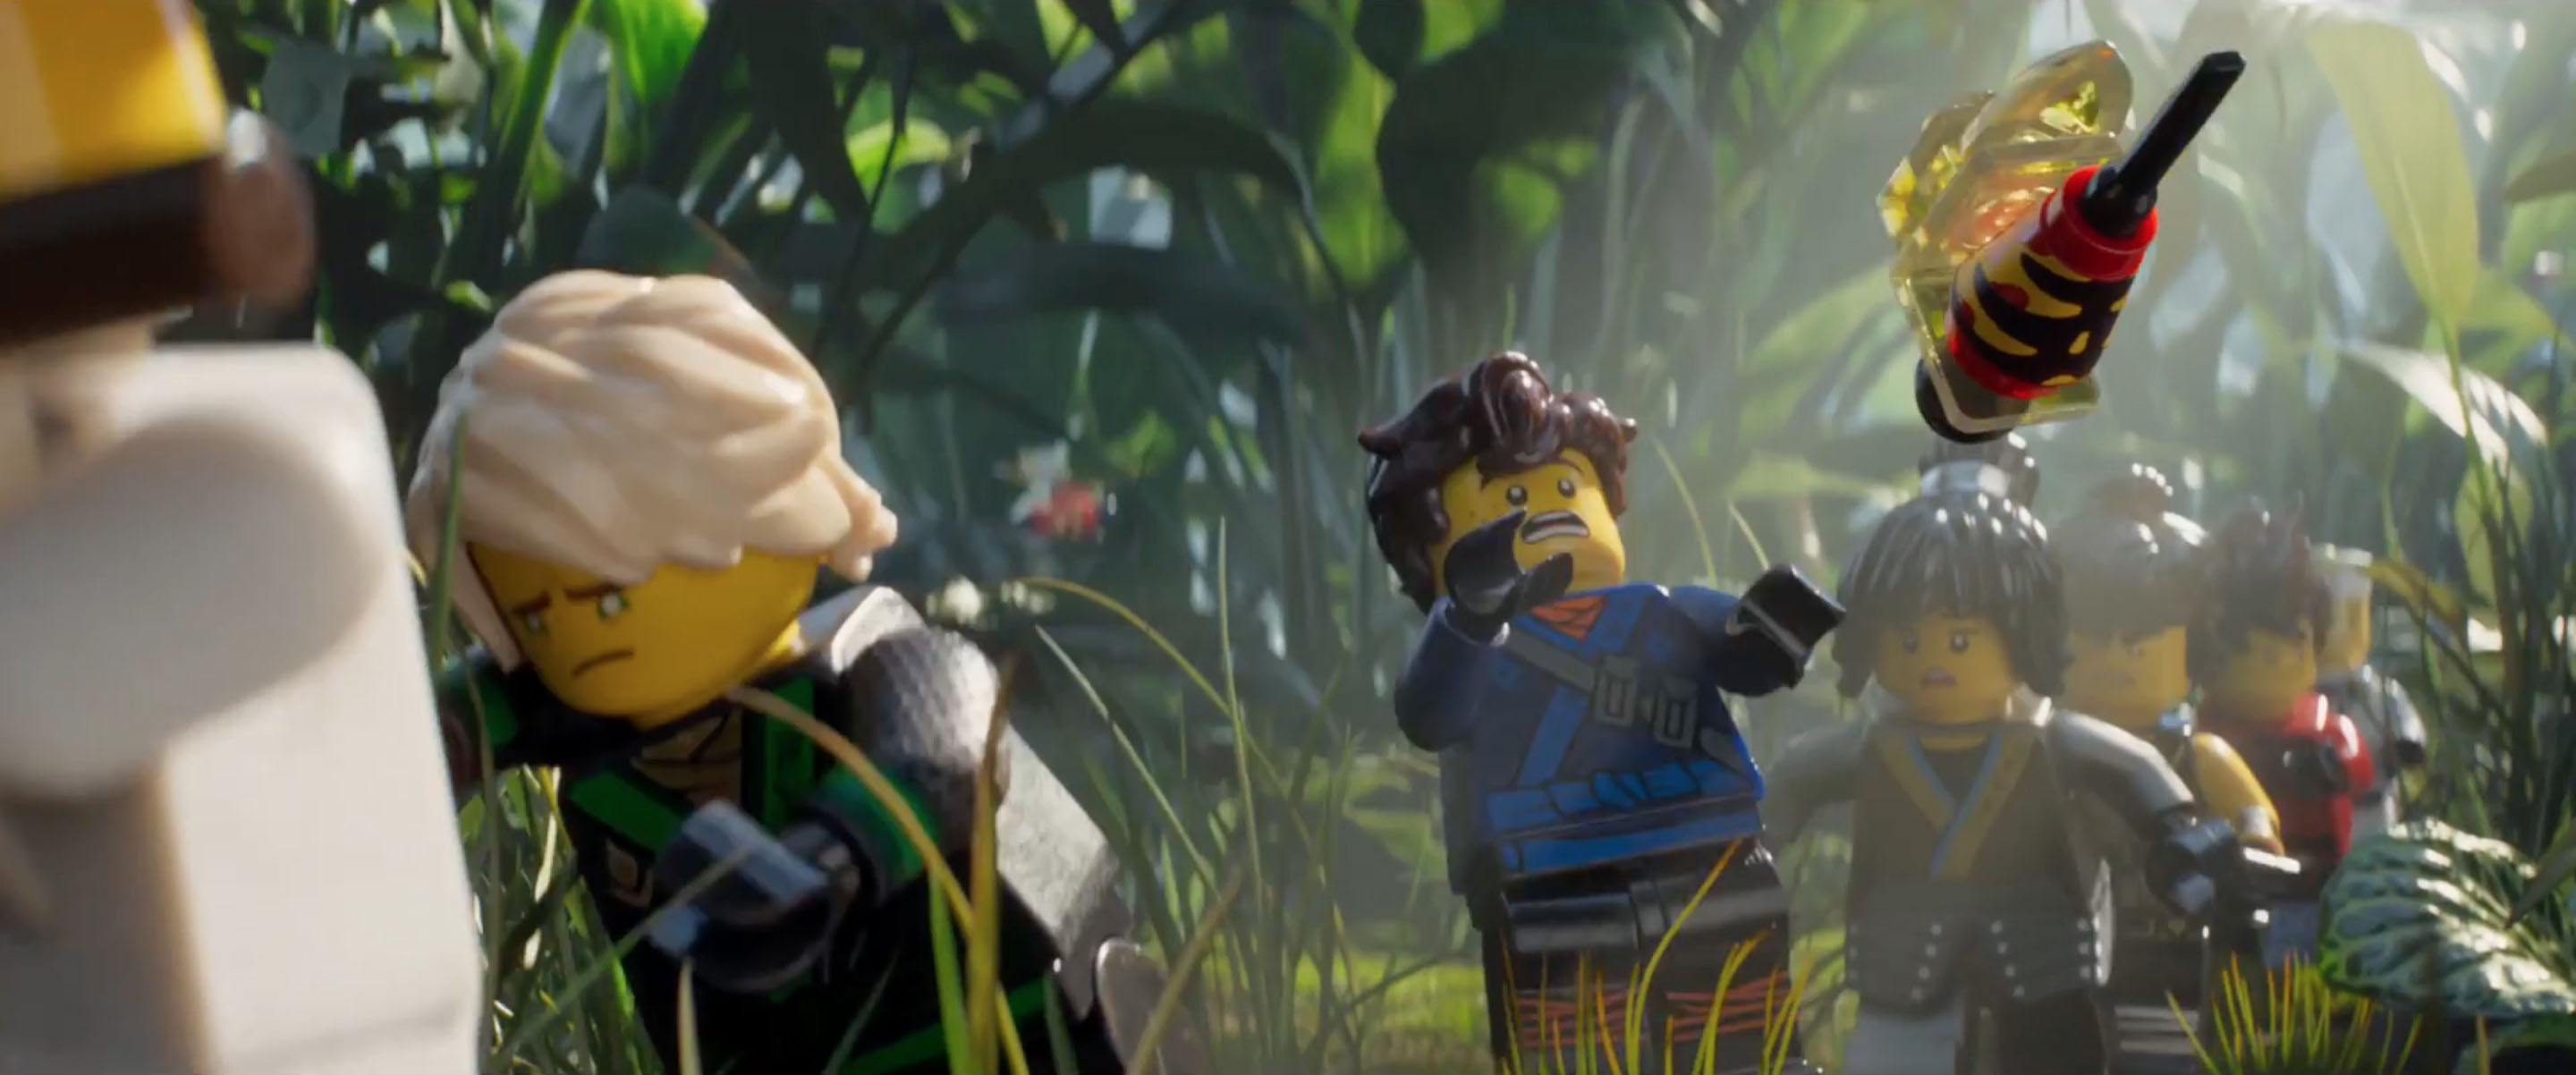 The Lego Ninjago Movie Dvd Review Impulse Gamer Ps Vita Video Game Region 1 English There Is Something Movies Do Pretty Well Even When They Are Repeating Same Formula And Thats Humour Ill Skip Batman Here